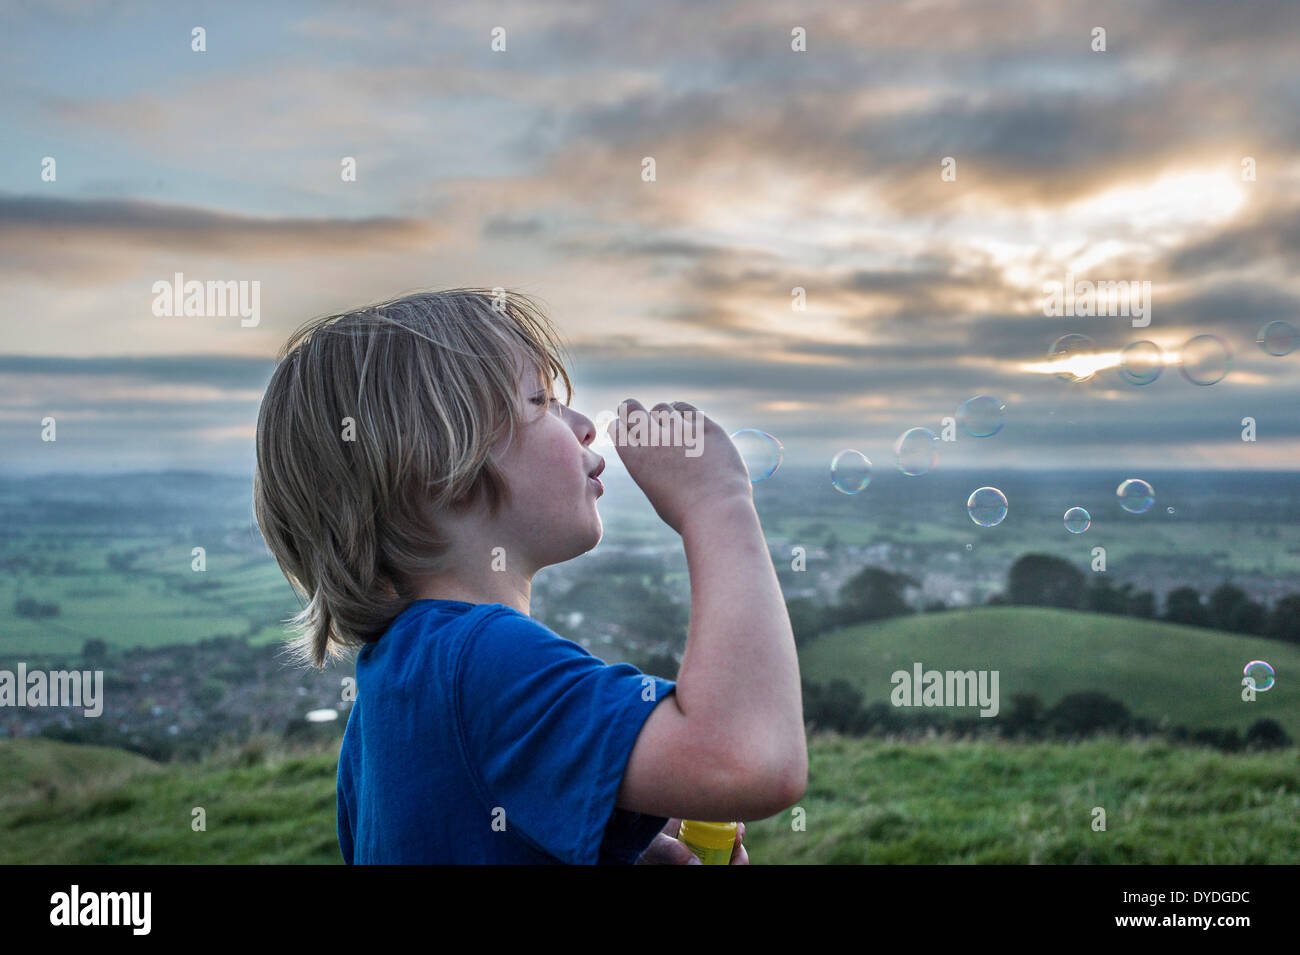 A boy blowing bubbles on Glastonbury Tor. - Stock Image